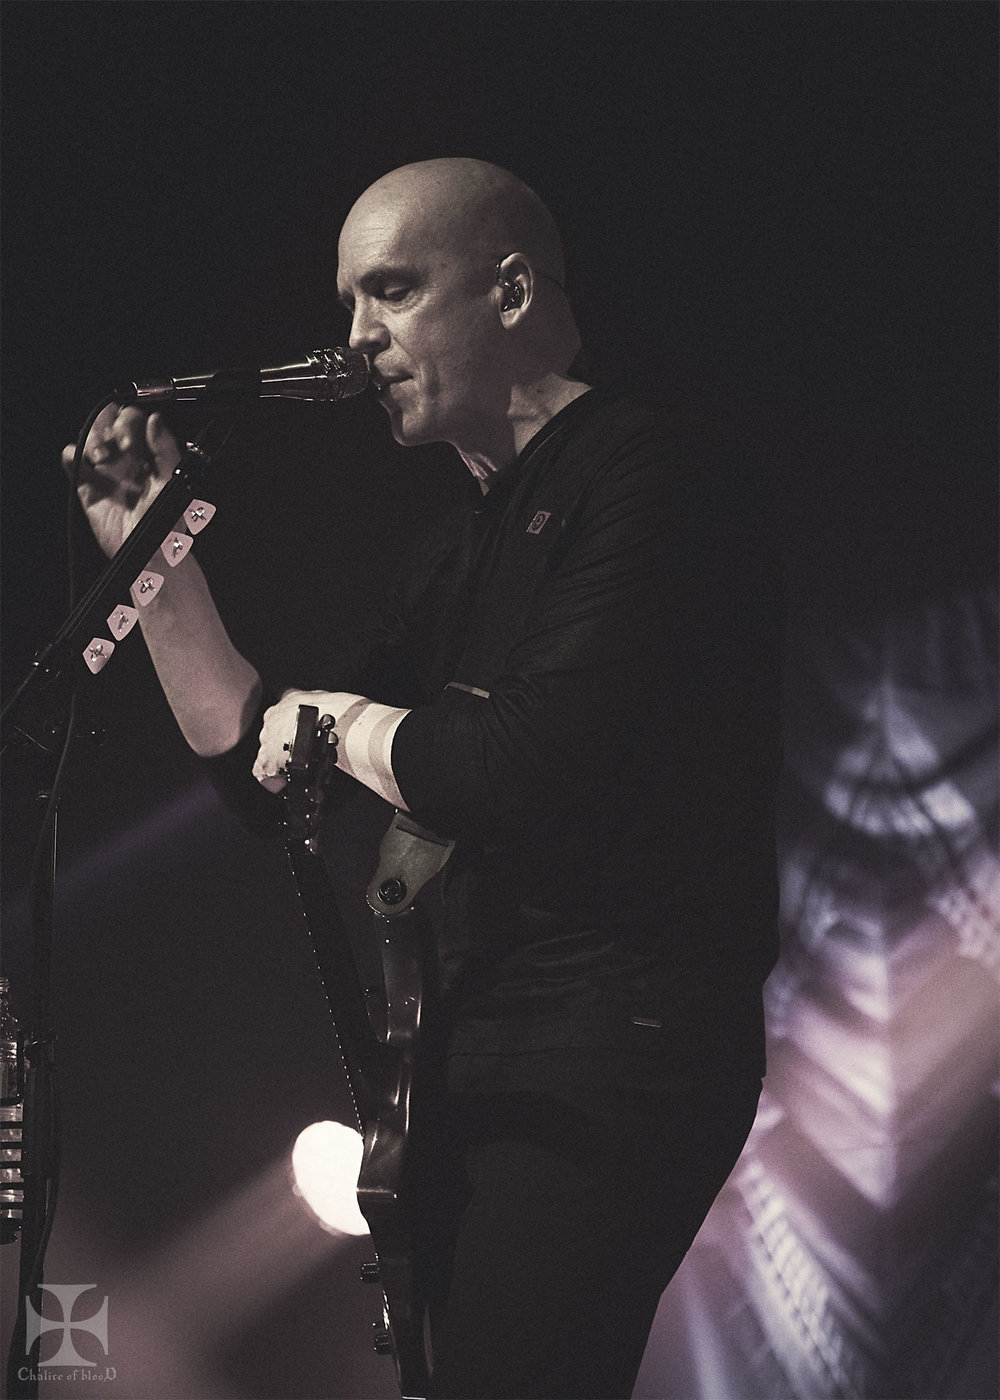 2017.05-Devin-Townsend---66-Exposure-watermarked.jpg